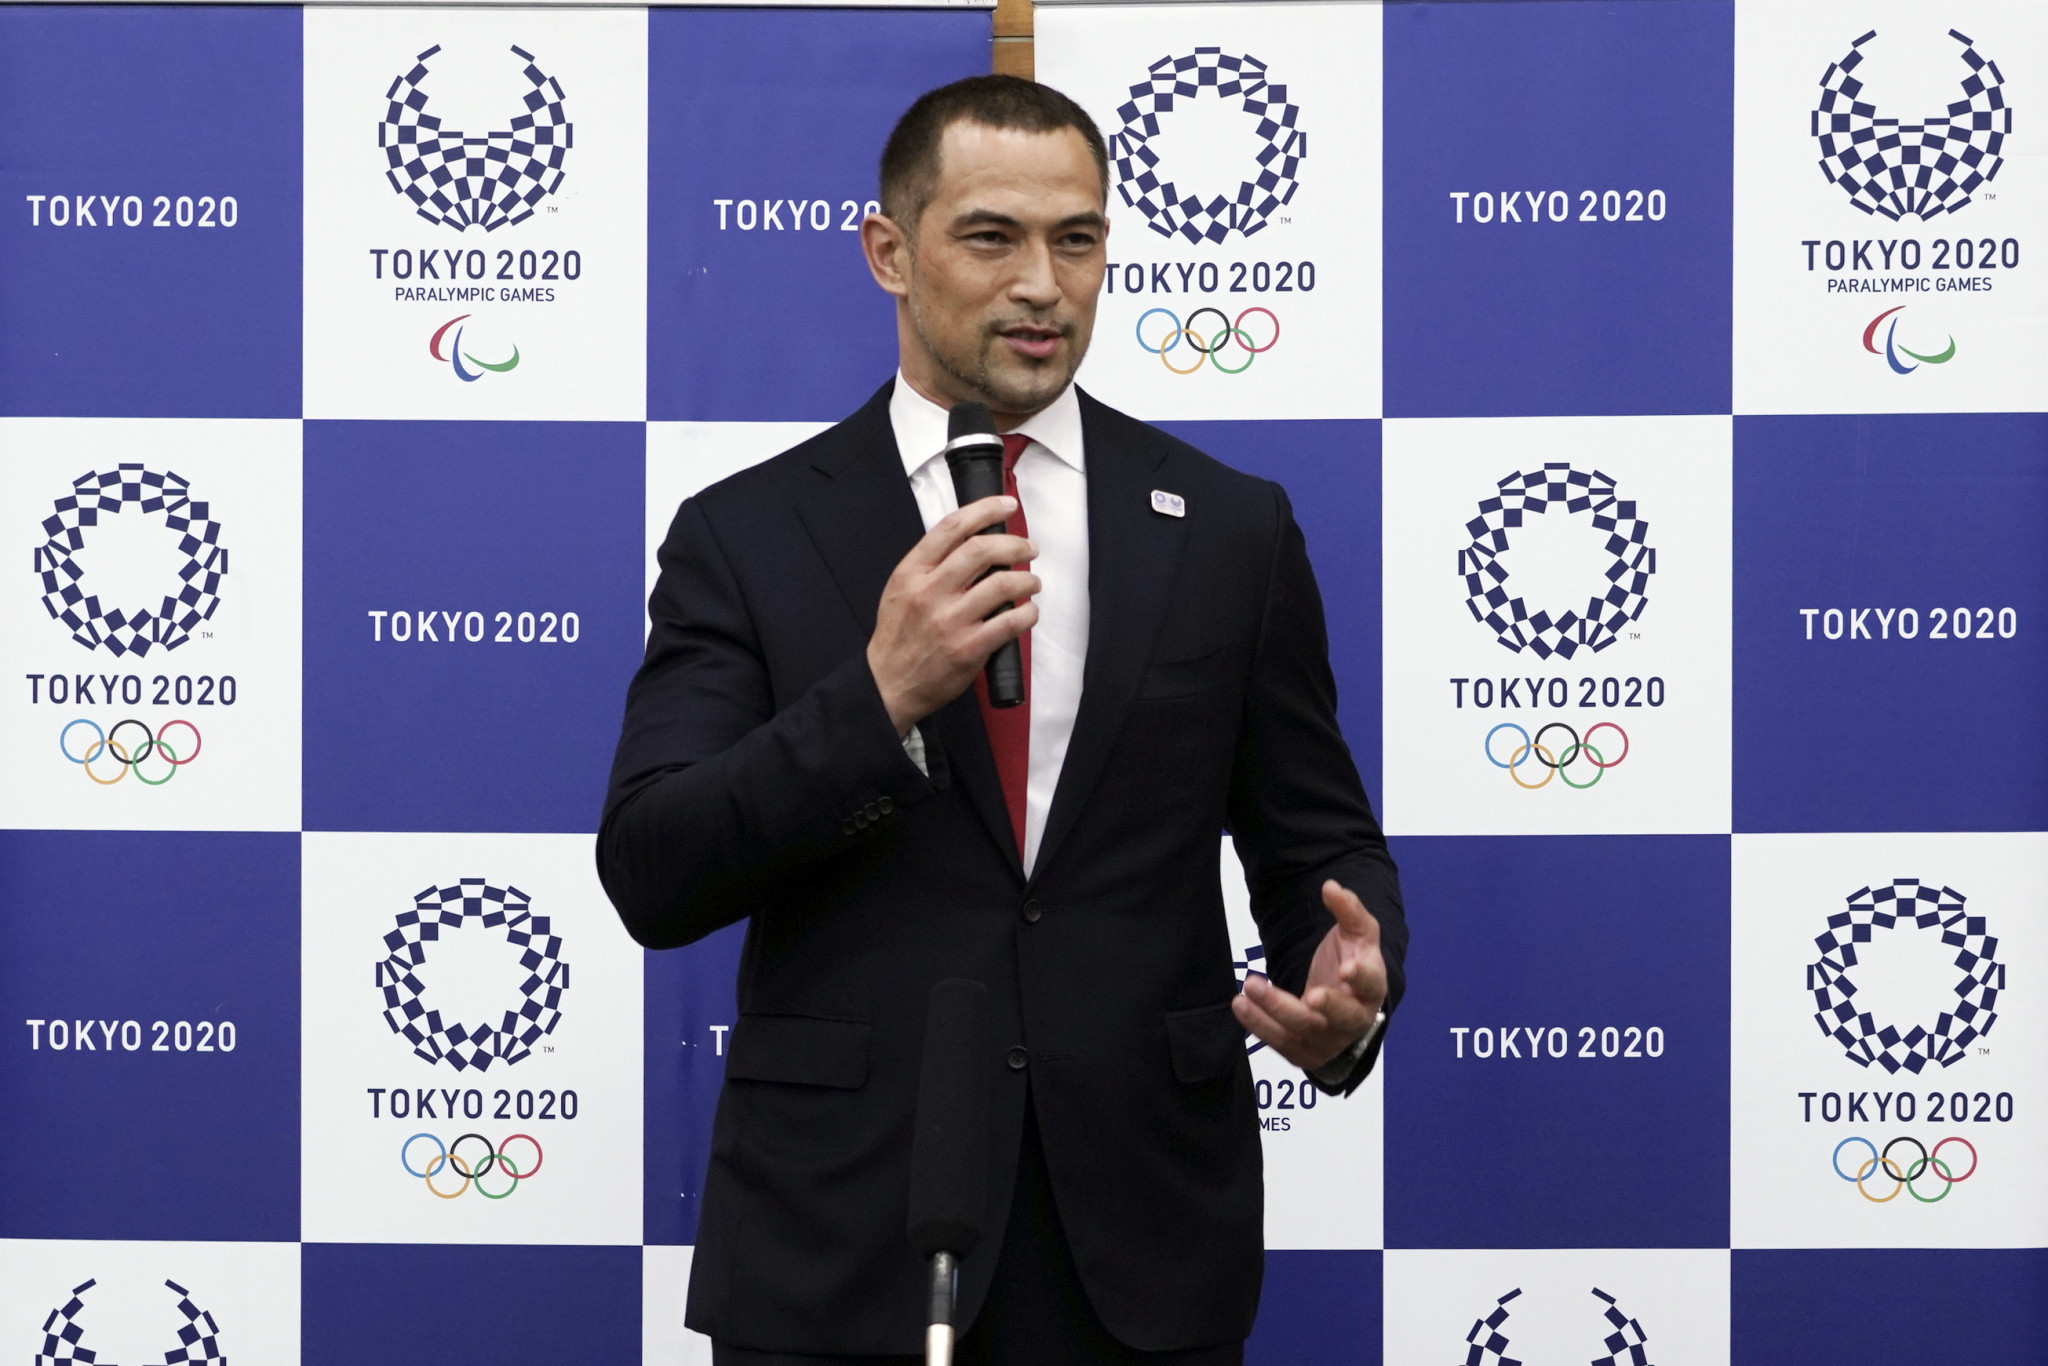 Former Tokyo 2020 sports director Koji Murofushi is reportedly set to undergo a stem cell transplant later this month ©Getty Images